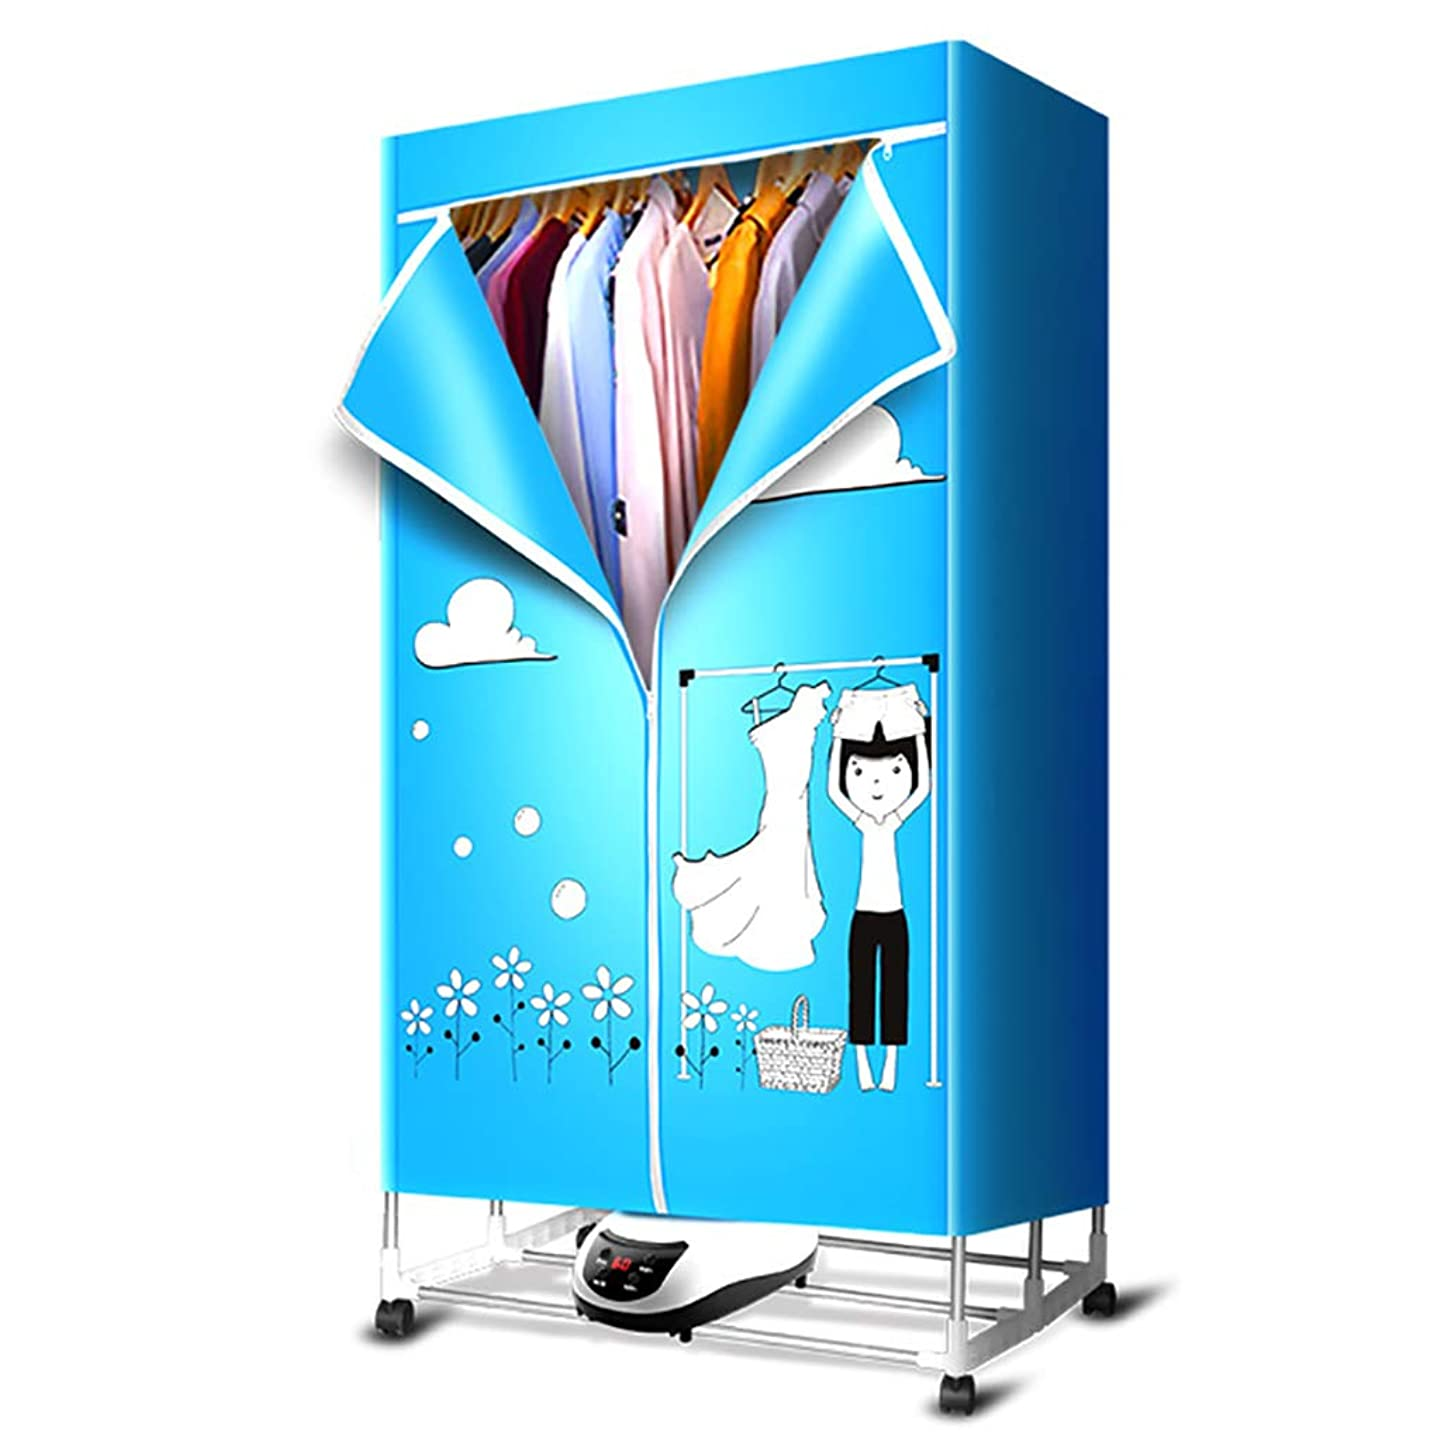 DDSS Clothes dryer Clothes Dryer - Baby Wardrobe Dryer Household Silent Stainless Steel Clothes Dryer Foldable, Fast Dry Negative Ion Load Capacity Up to 30KG, Remote Control /-/ (Color : A)